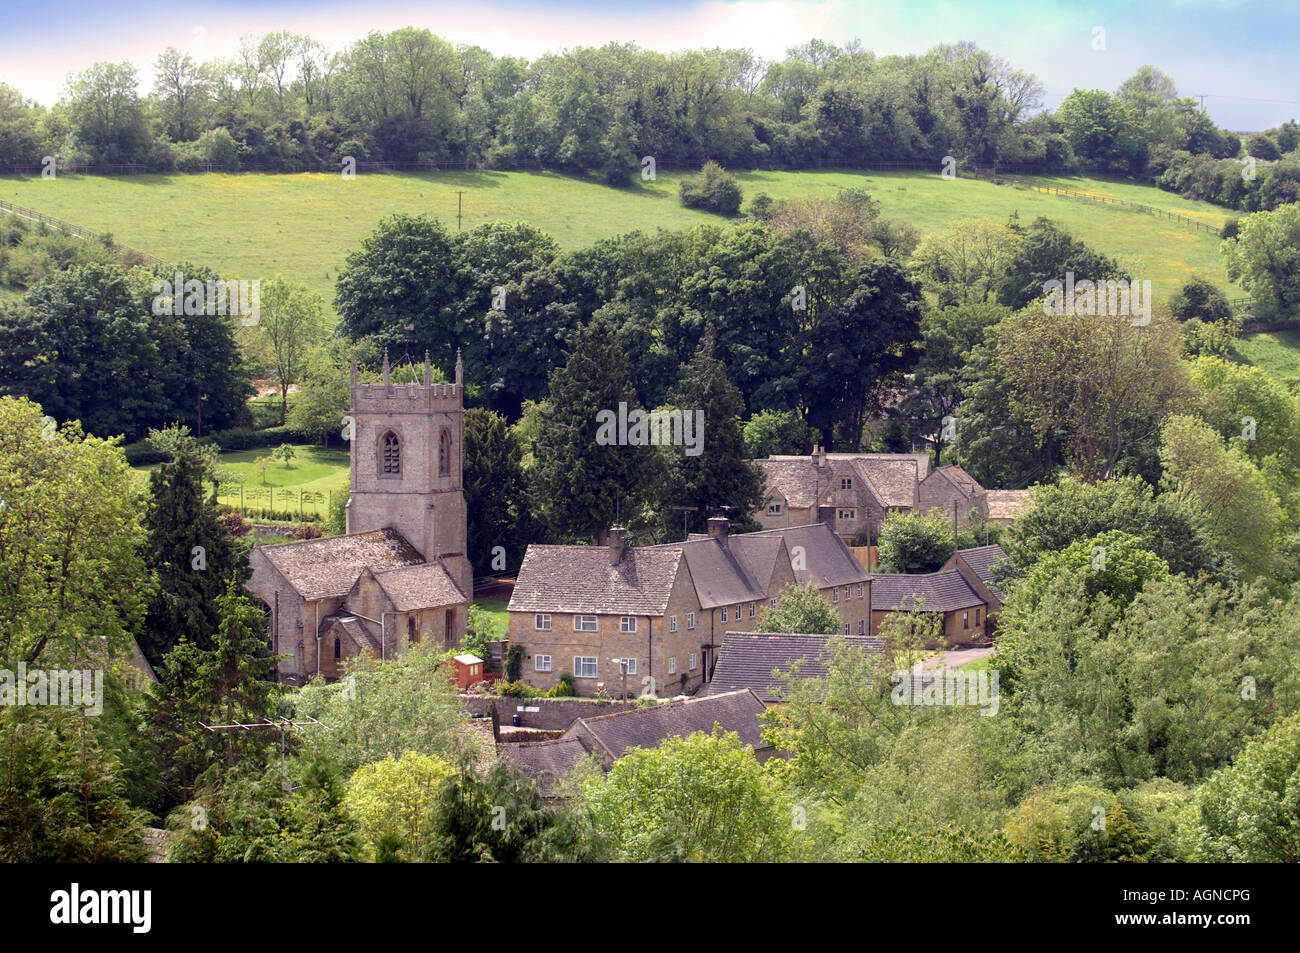 THE VILLAGE OF NAUNTON WITH ST ANDREWS CHURCH GLOUCESTERSHIRE UK - Stock Image